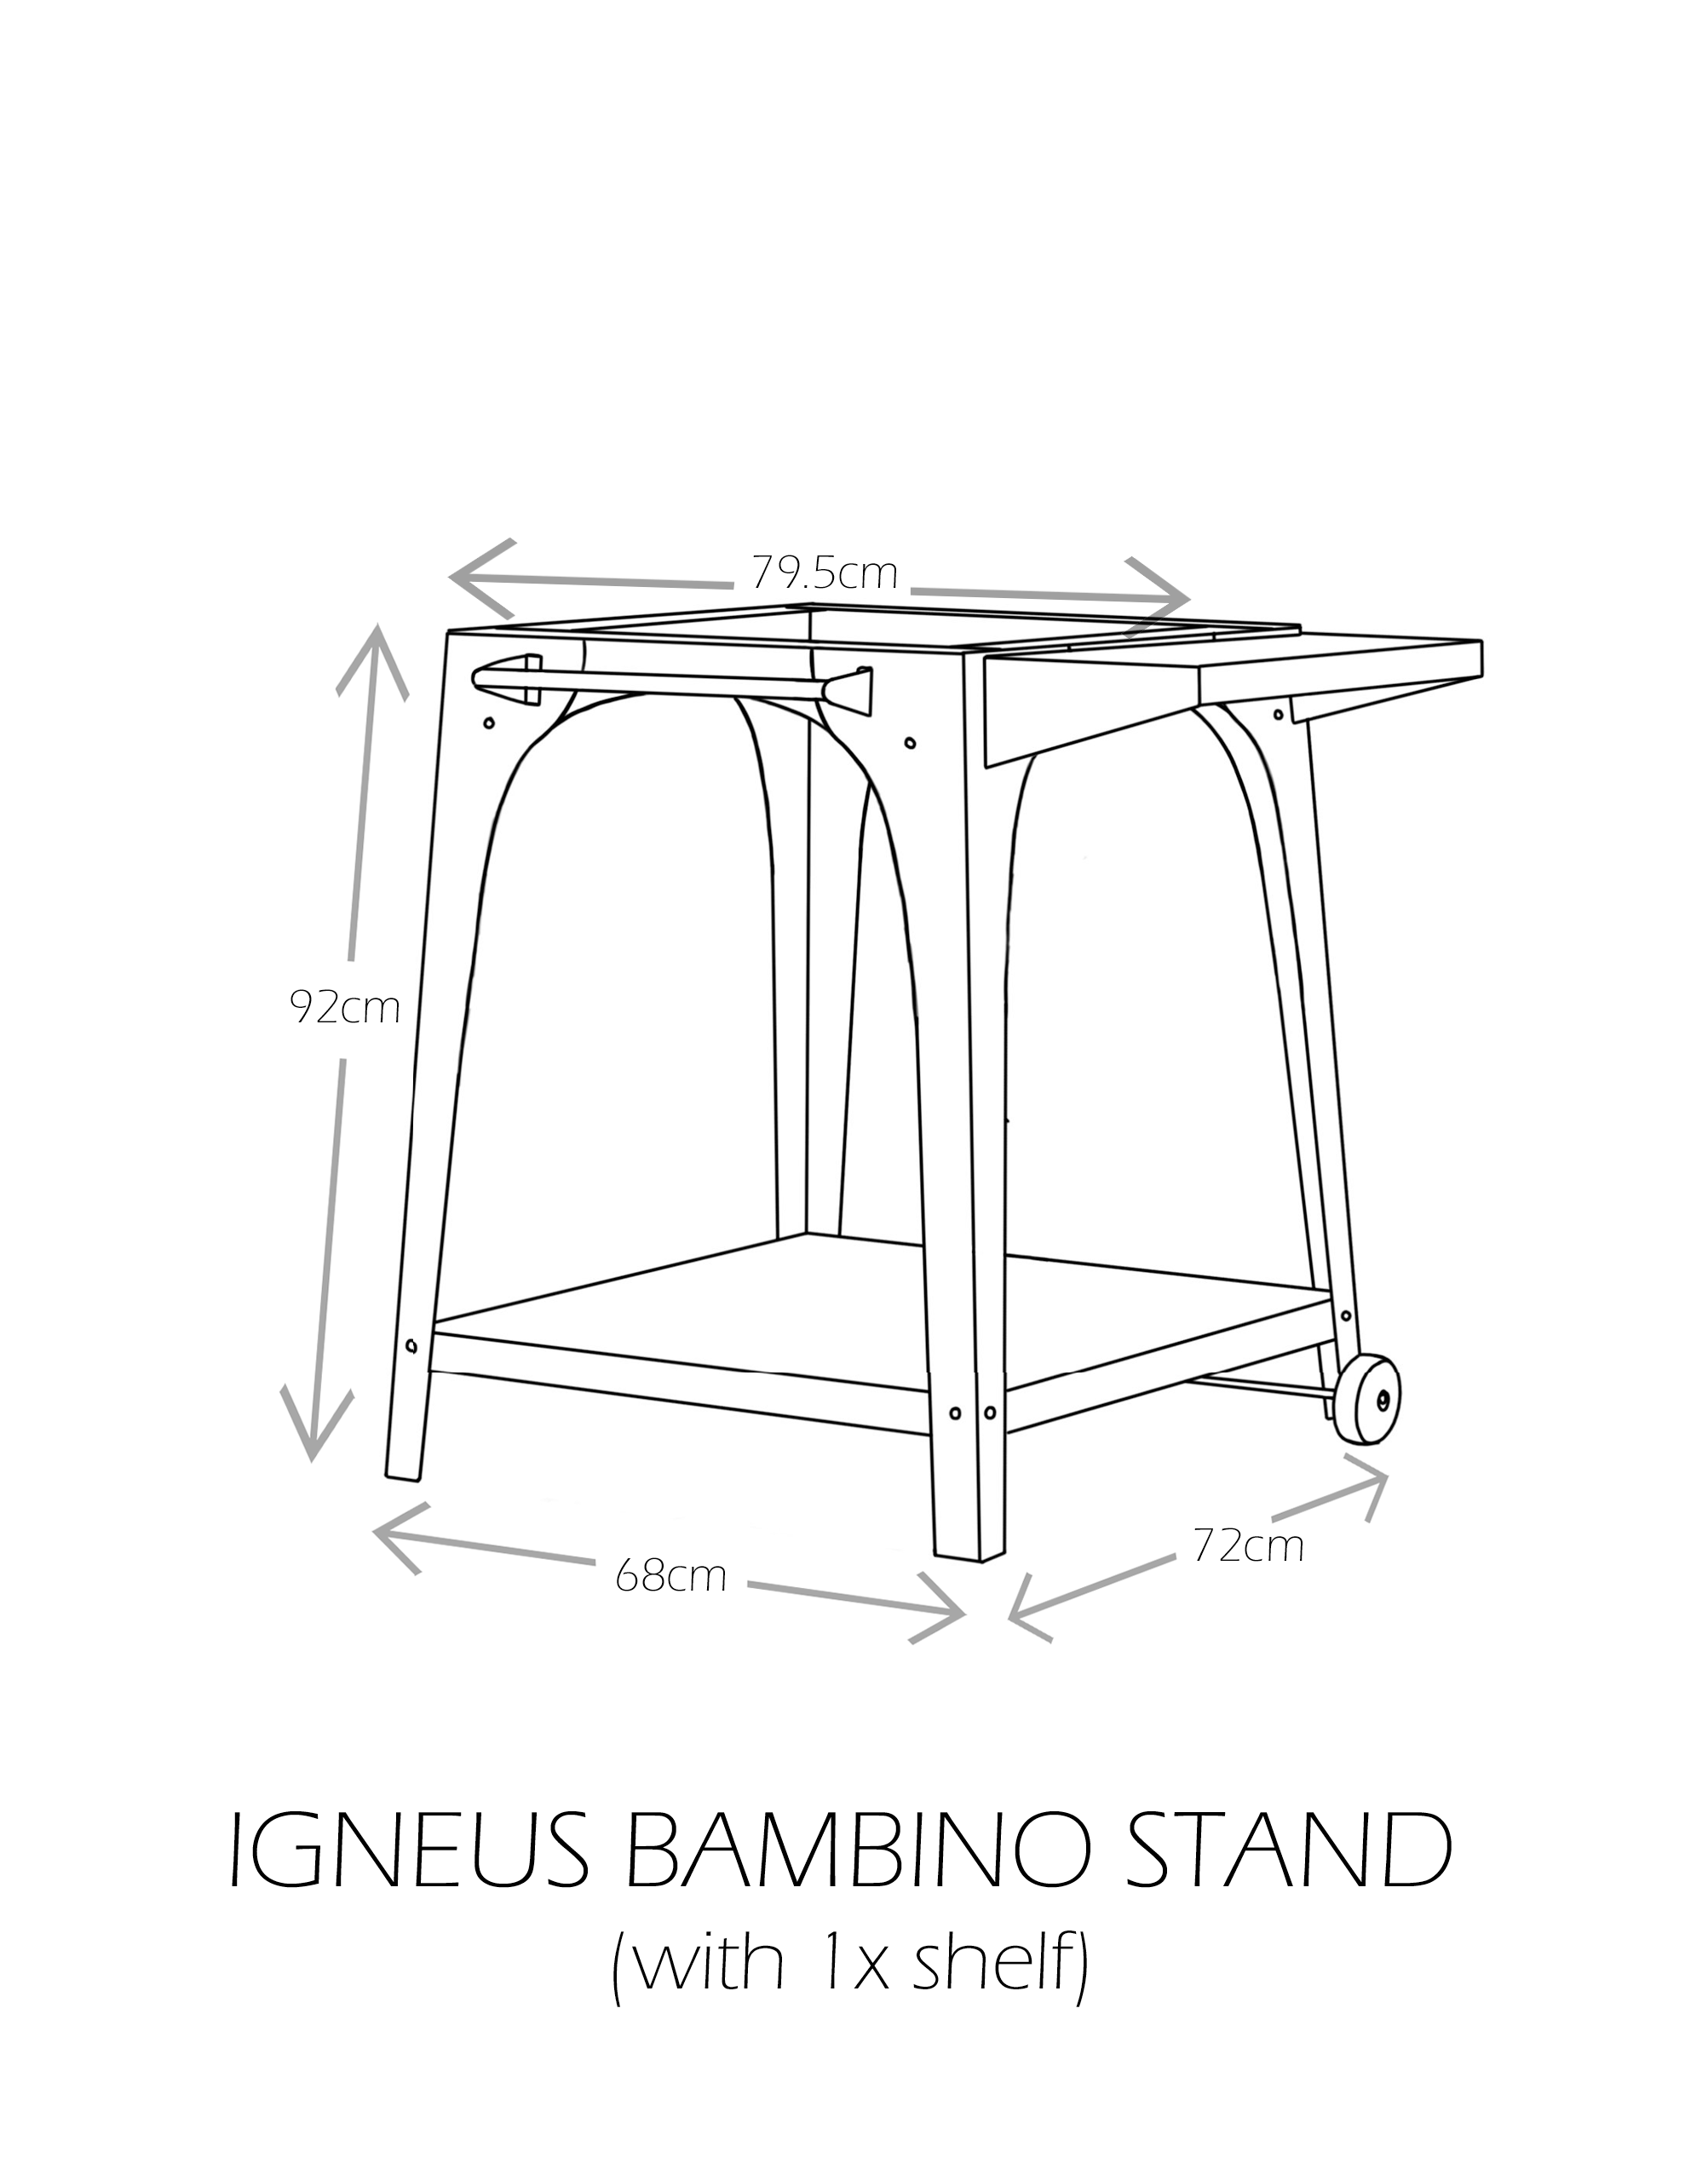 Igneus Bambino stand with 1x shelf - dimensions